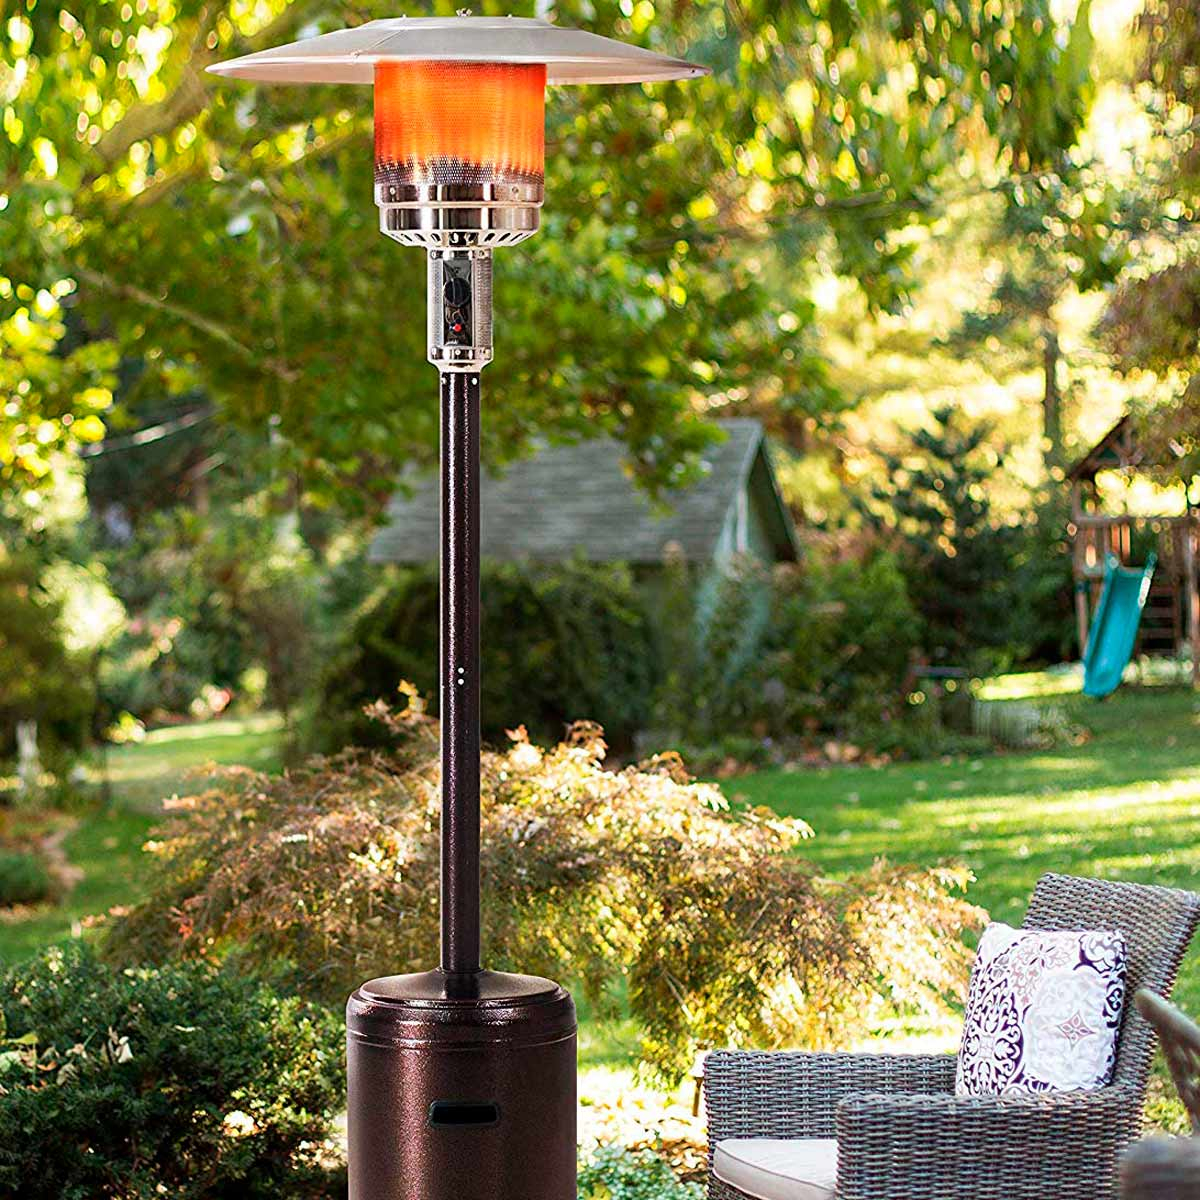 13 Outdoor Patio Heaters To Keep You Cozy Family Handyman throughout dimensions 1200 X 1200